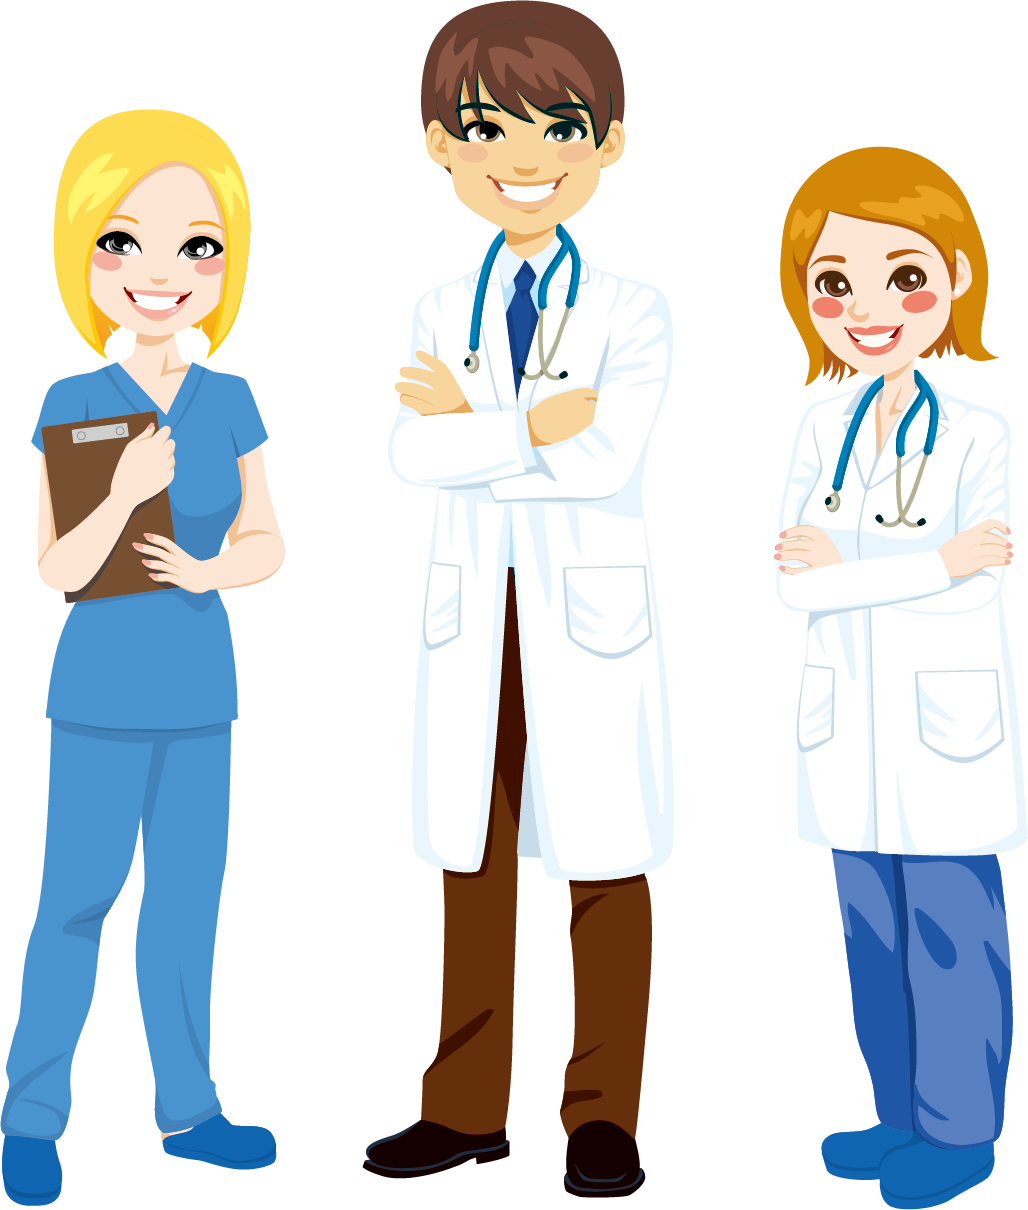 image free stock Vector doctor health worker. Male nurse clipart at